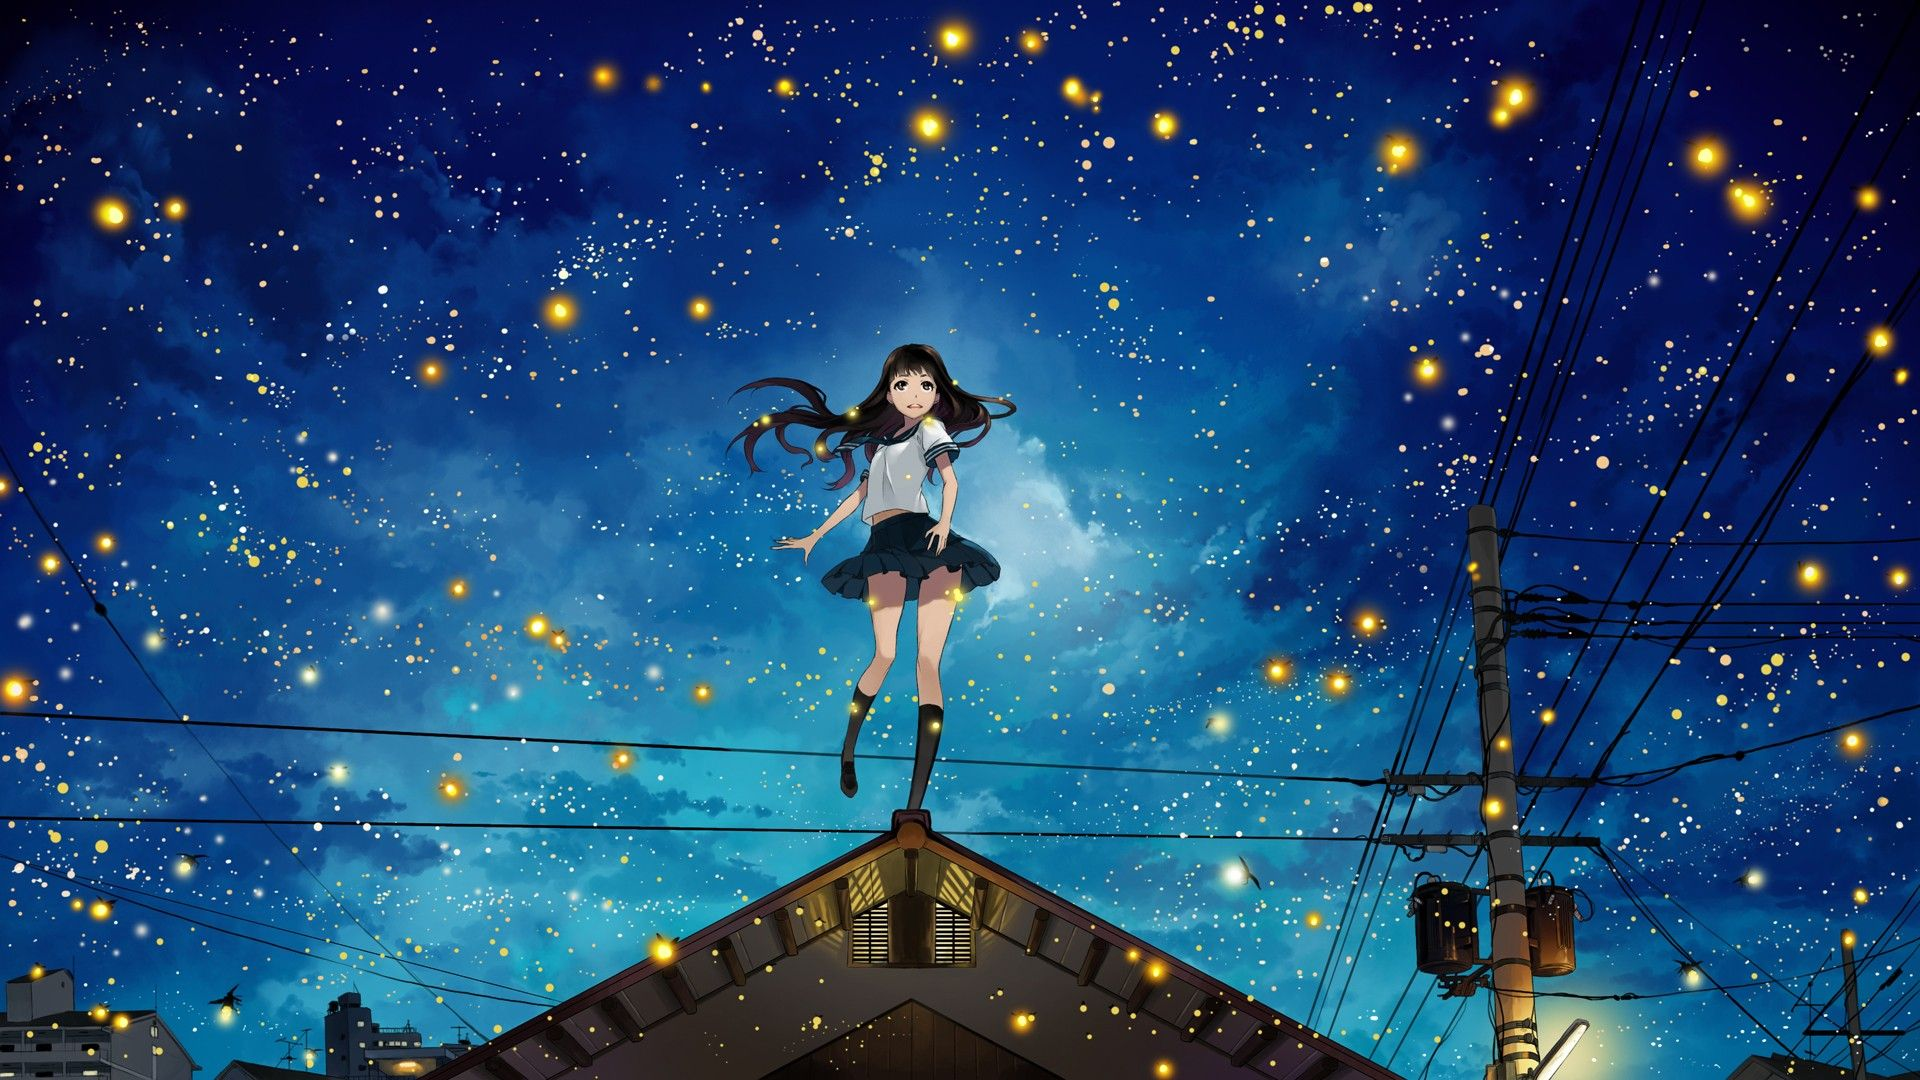 Free Download Photo Collection Anime Night Sky With 1920x1080 For Your Desktop Mobile Tablet Explore 88 Anime Sky Wallpapers Anime Sky Wallpapers Sky Wallpaper Sky Backgrounds